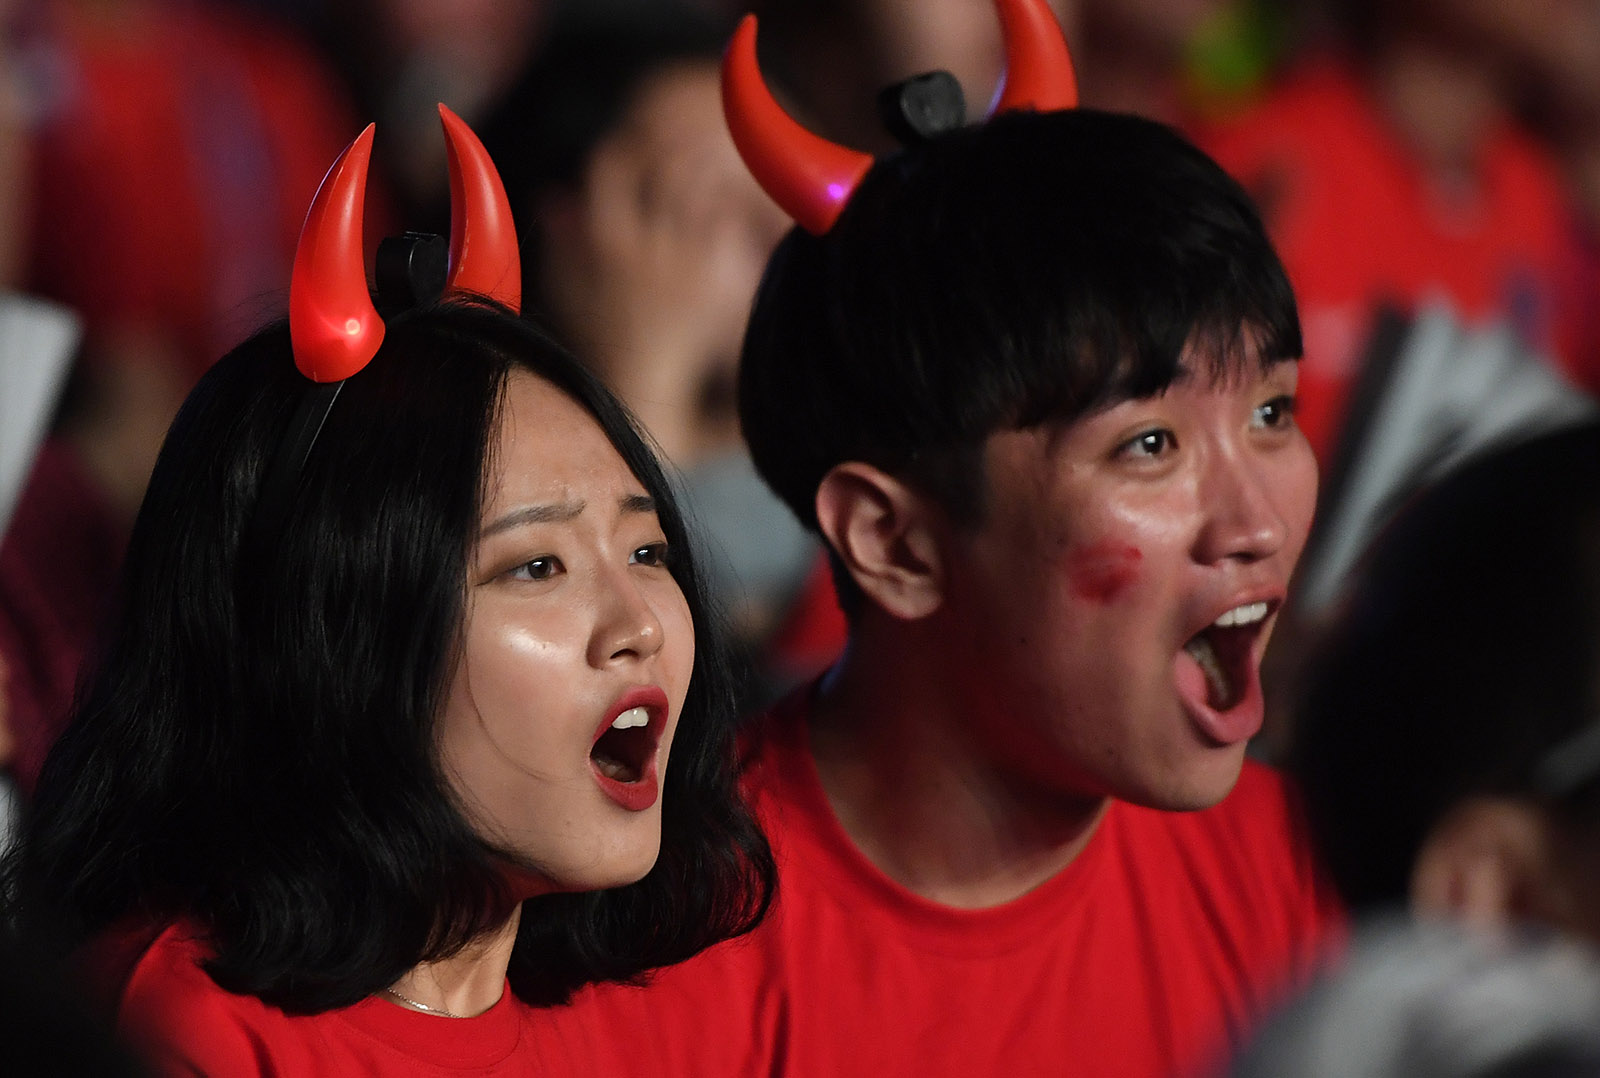 Fans watching the match between South Korea and Sweden on a large screen, Seoul, June 18, 2018